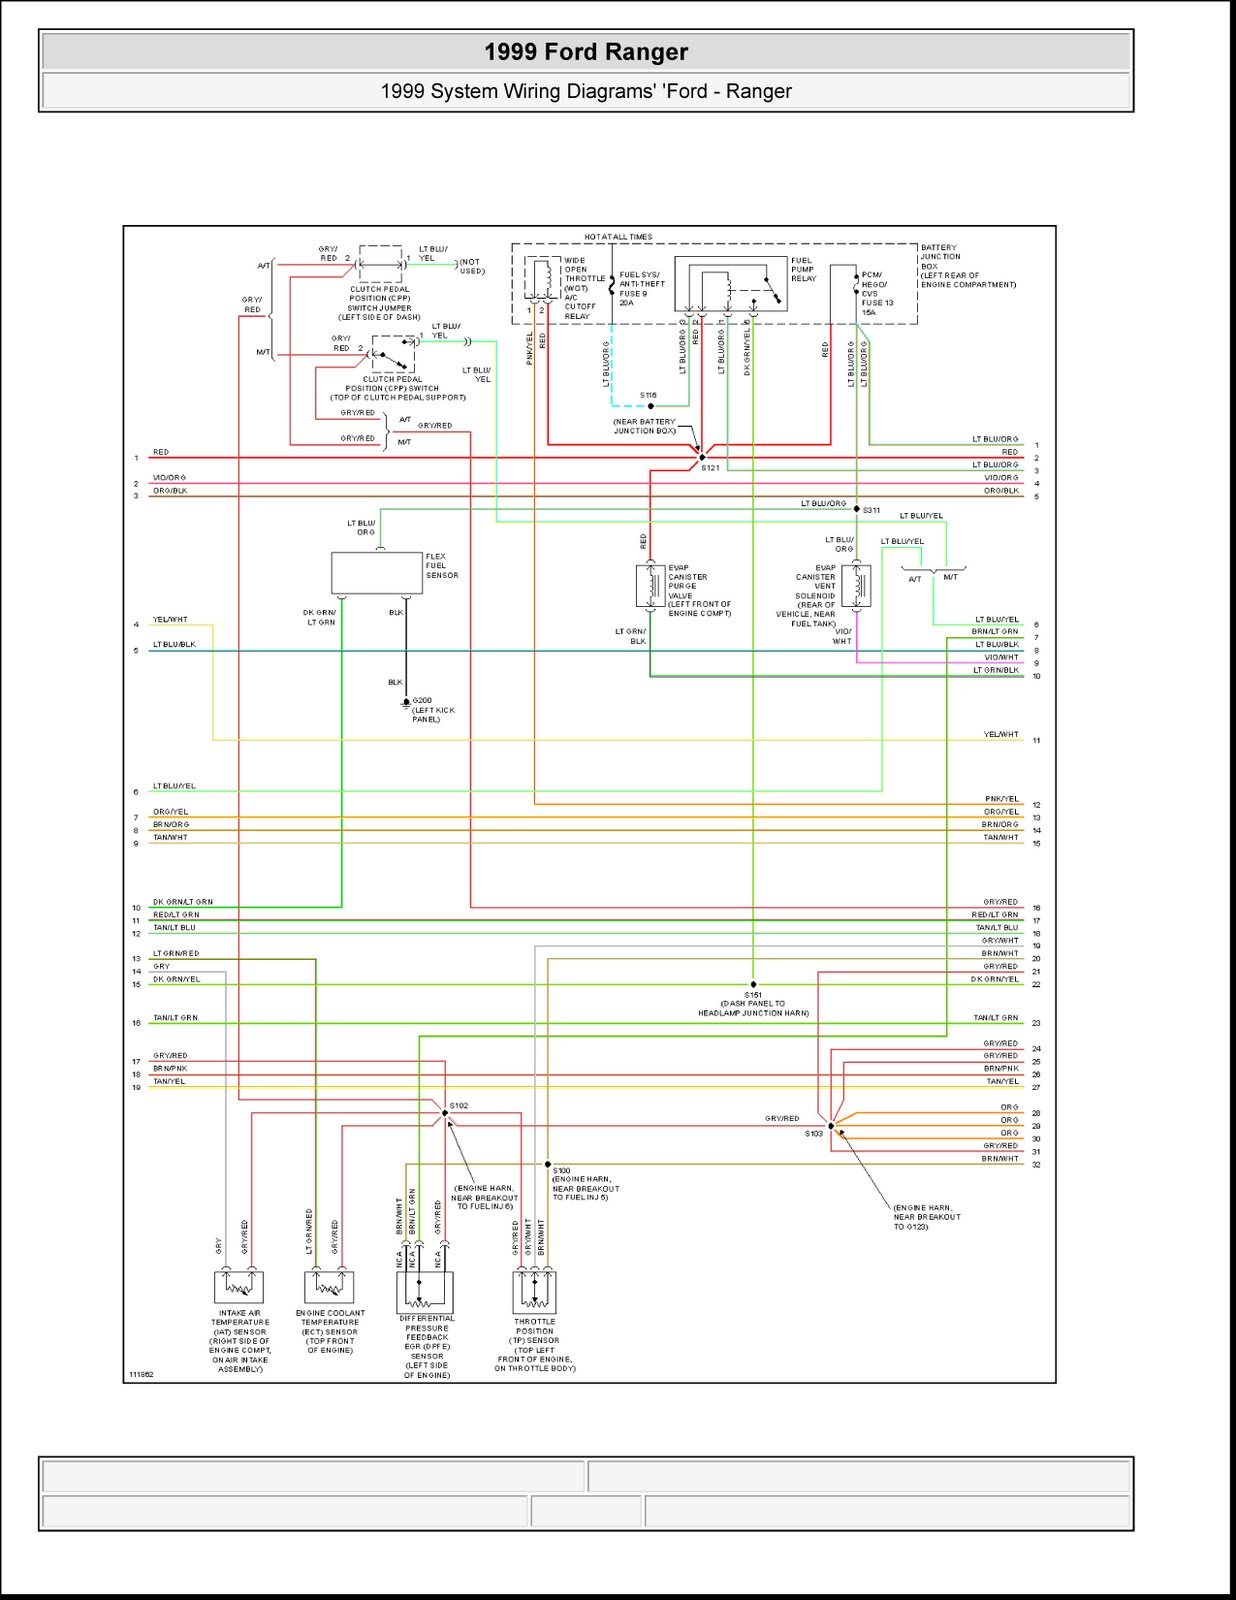 Ford E Fuse Box Map likewise Ford Escape Ac Wiring Diagram further Maxresdefault further B F Dce further Ford Econoline Fuse Box Diagram. on ford explorer electrical wiring diagrams